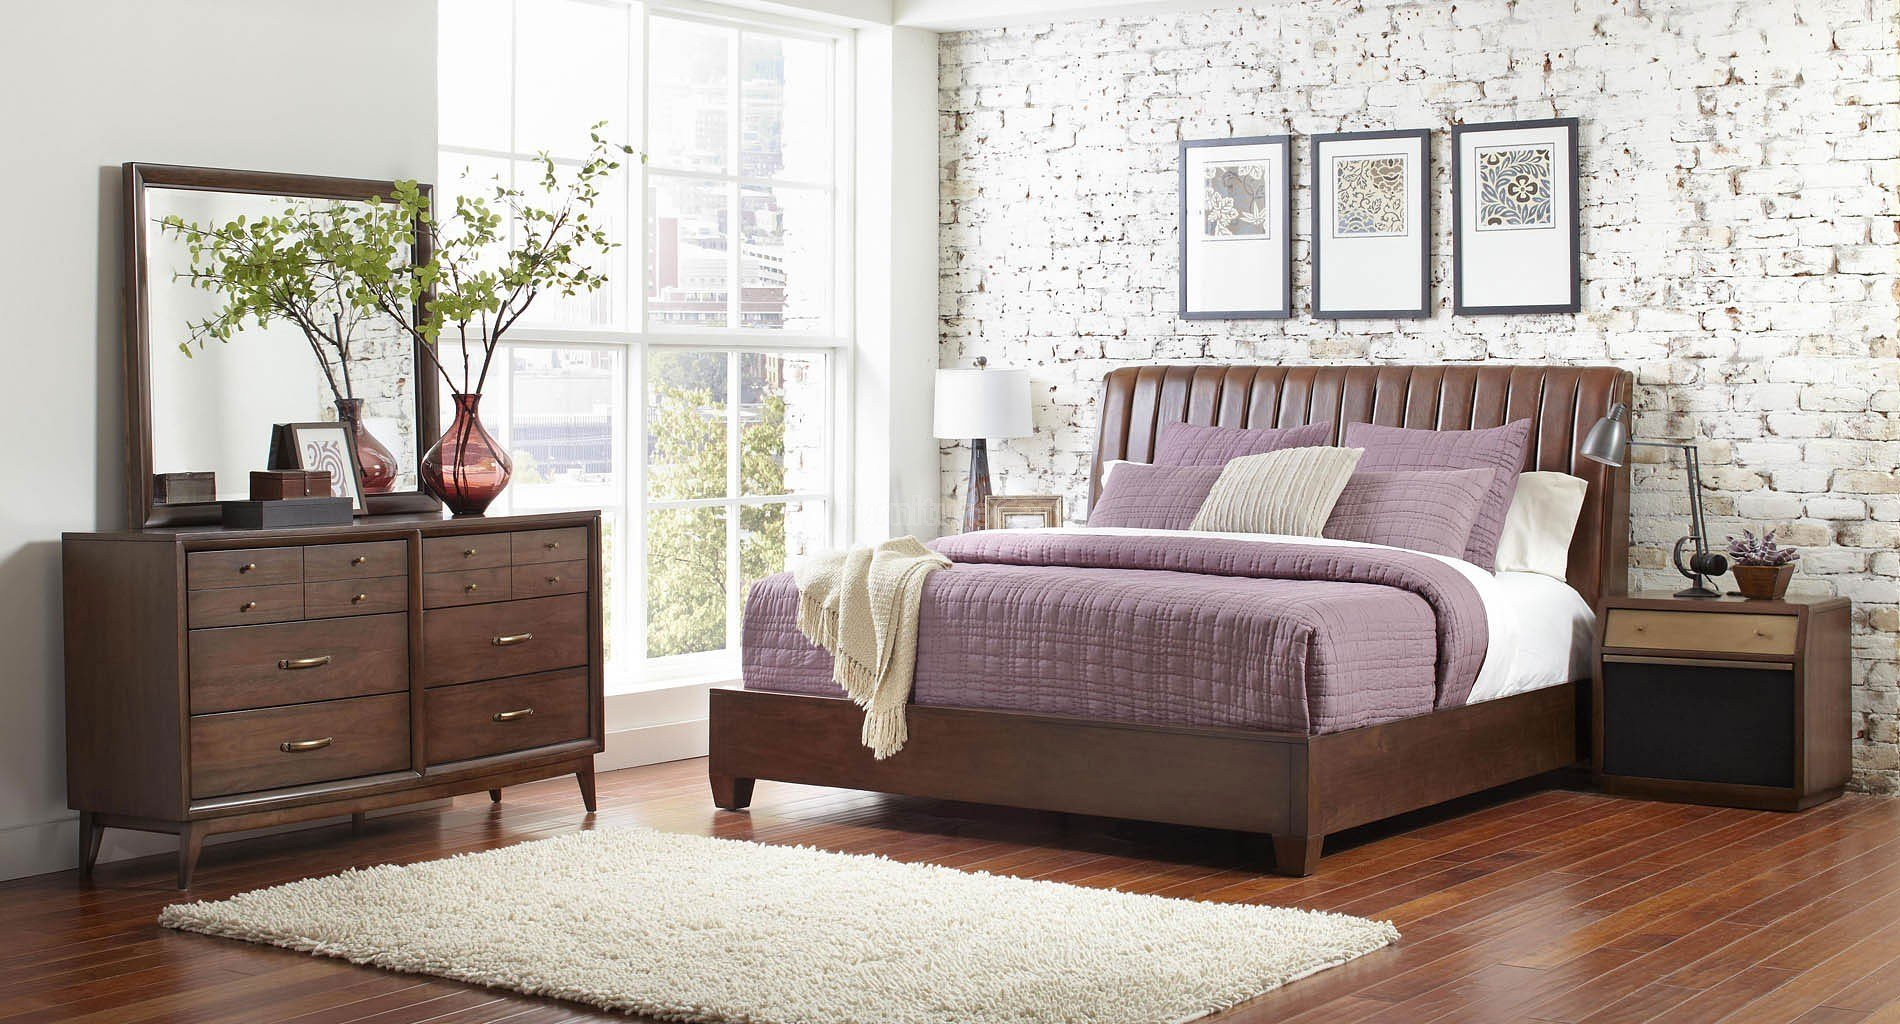 Best Ashley Furniture South Coast Bedroom Set Reviews Home With Pictures